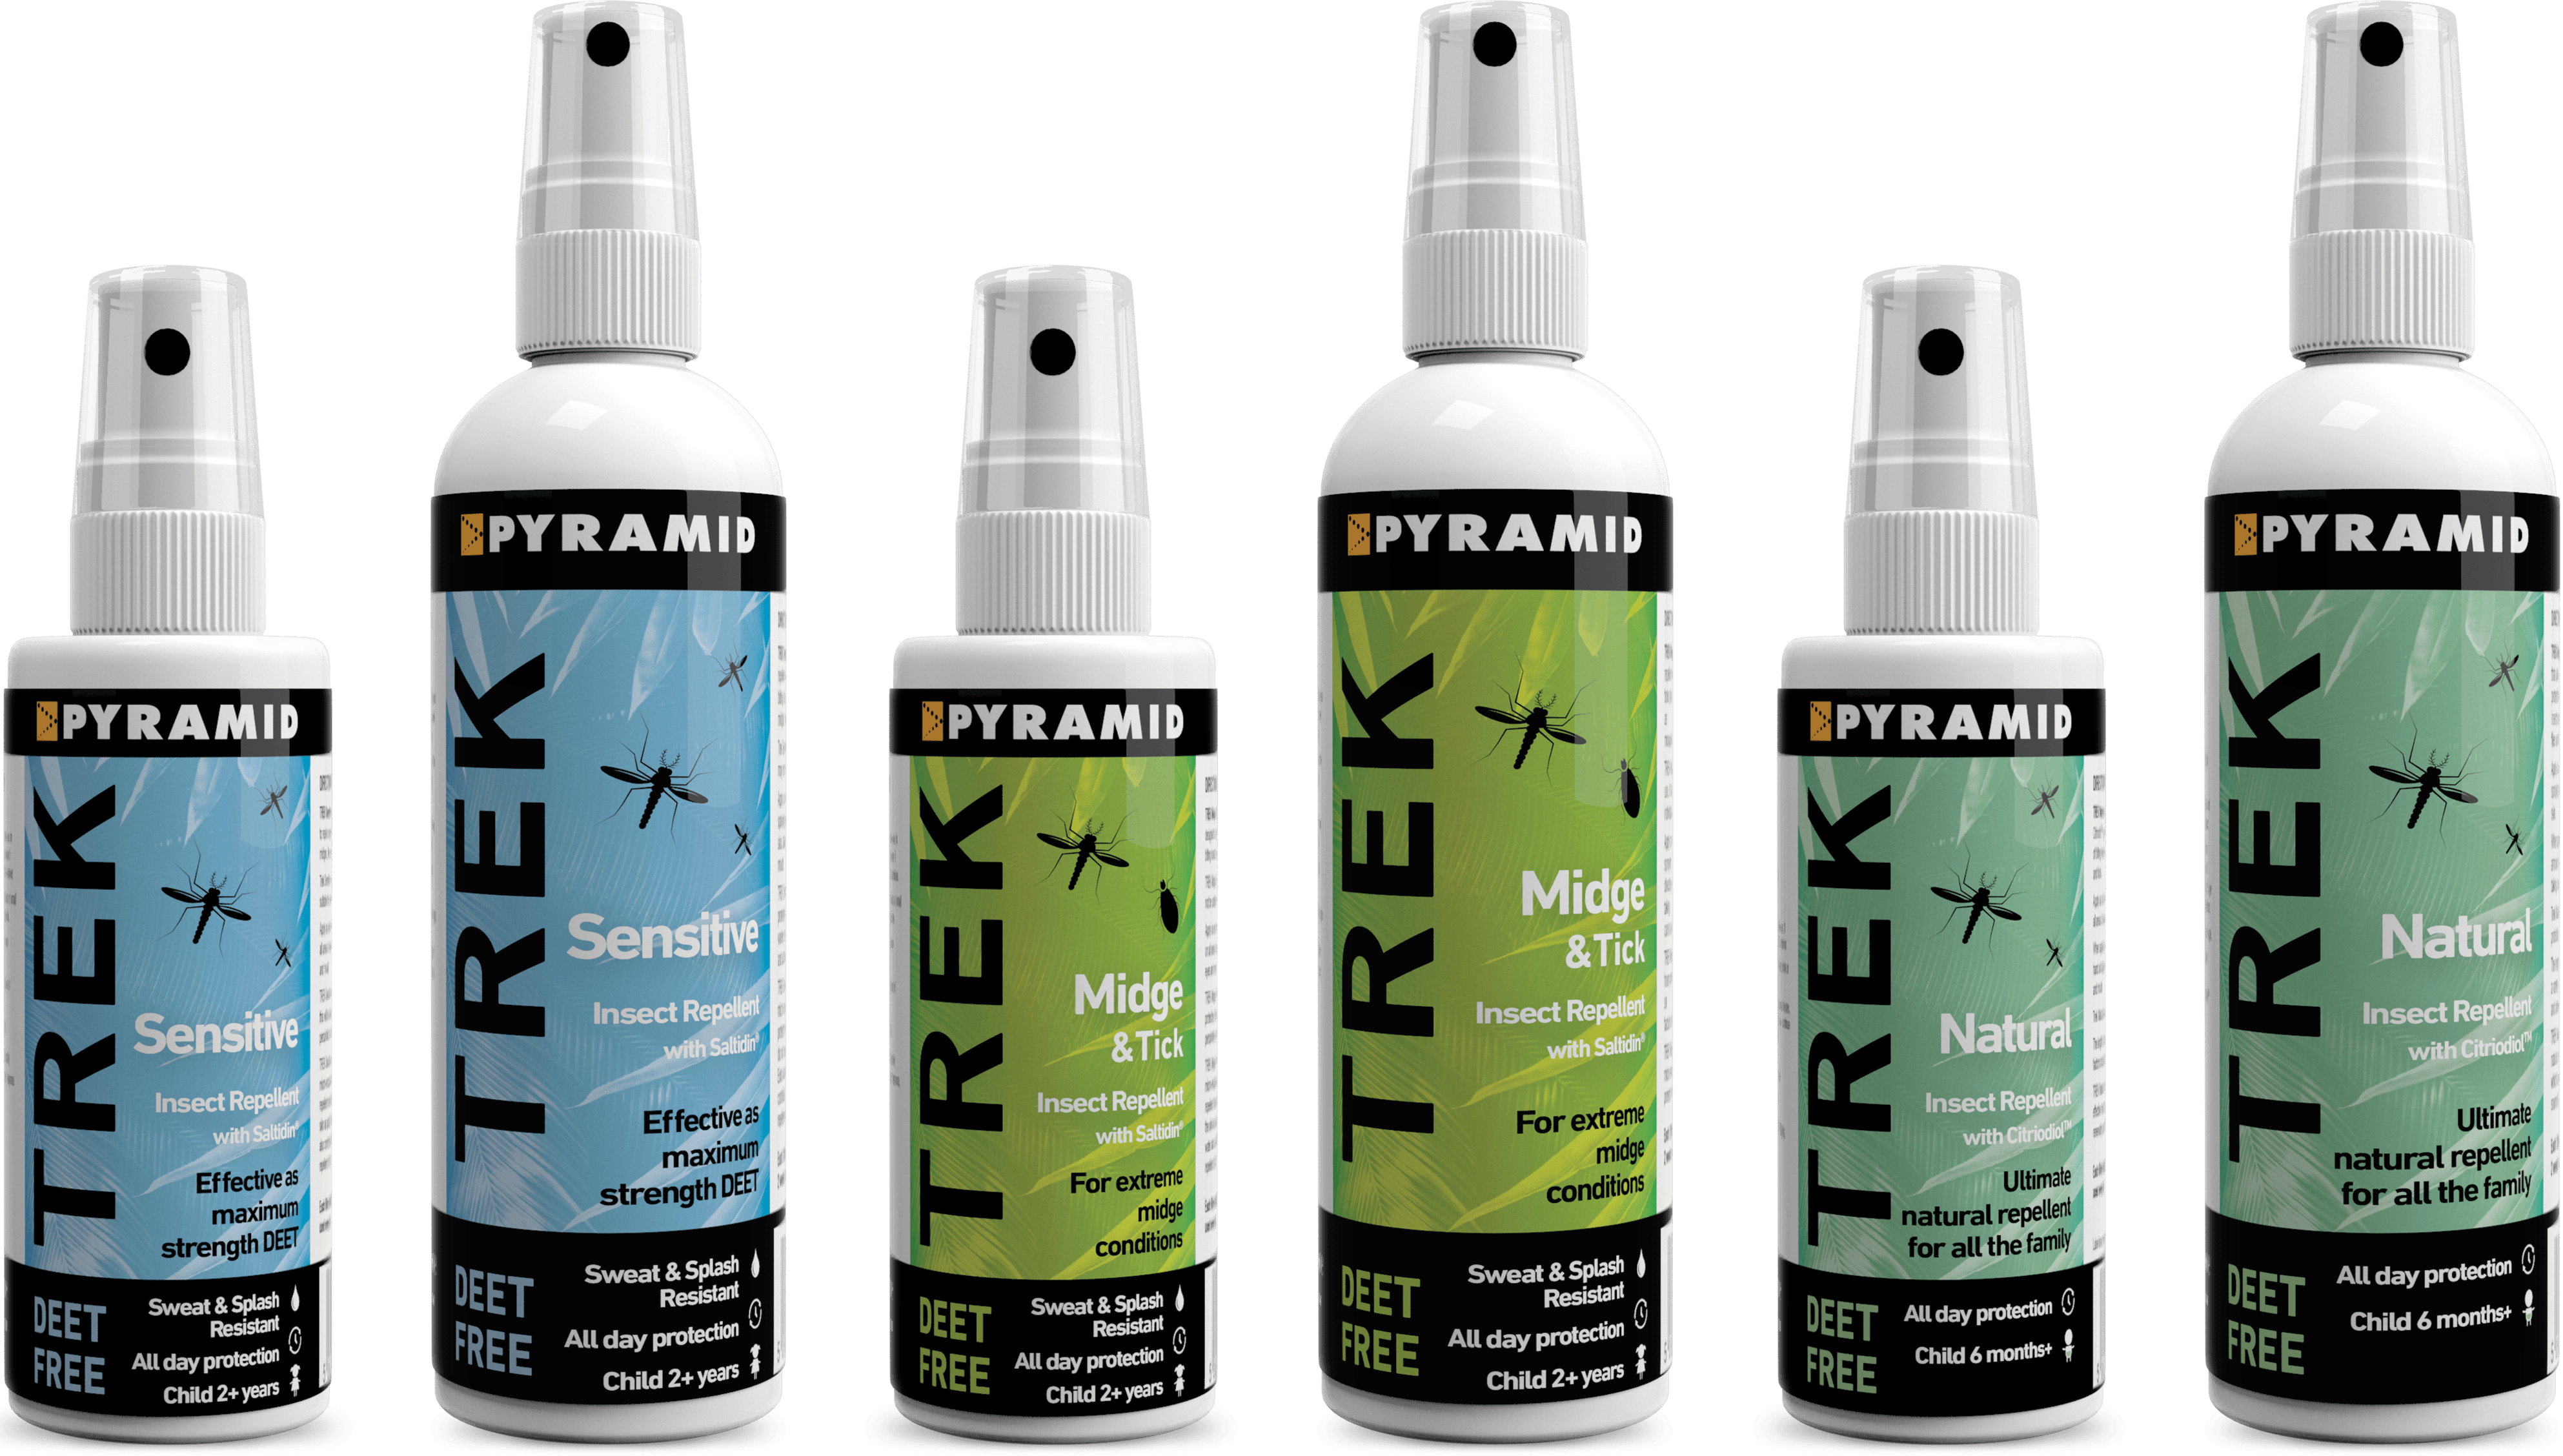 Pyramid-Trek-Midge-and-Tick-60ml-2